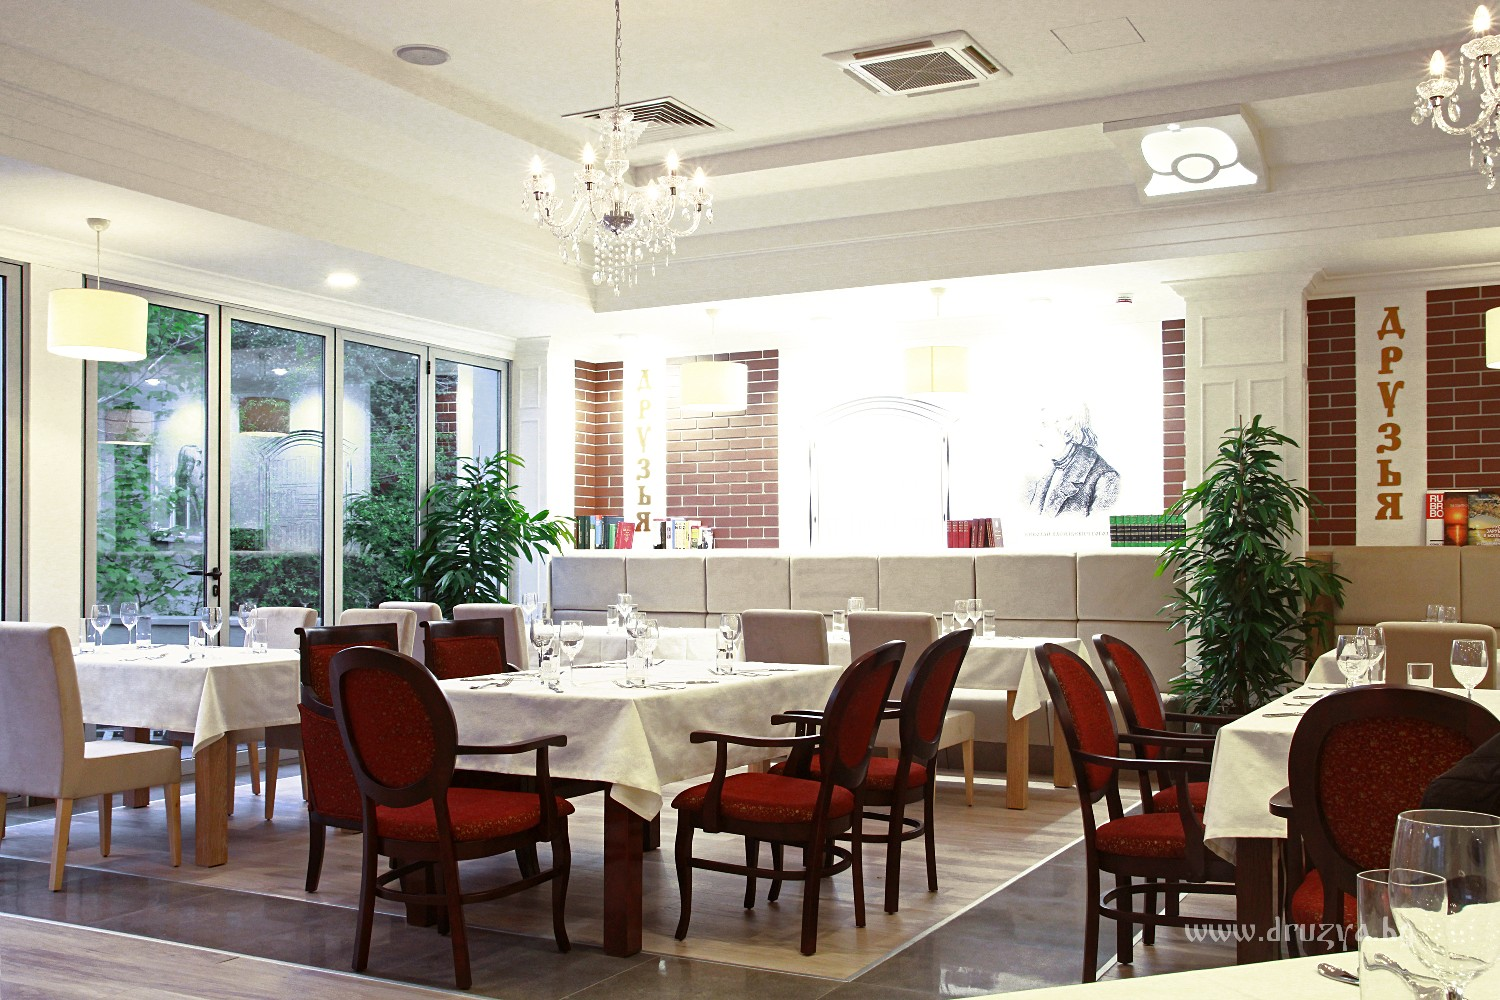 Restaurant Kitchen Air Conditioning tangra built the ventilation and air conditioning systems of the